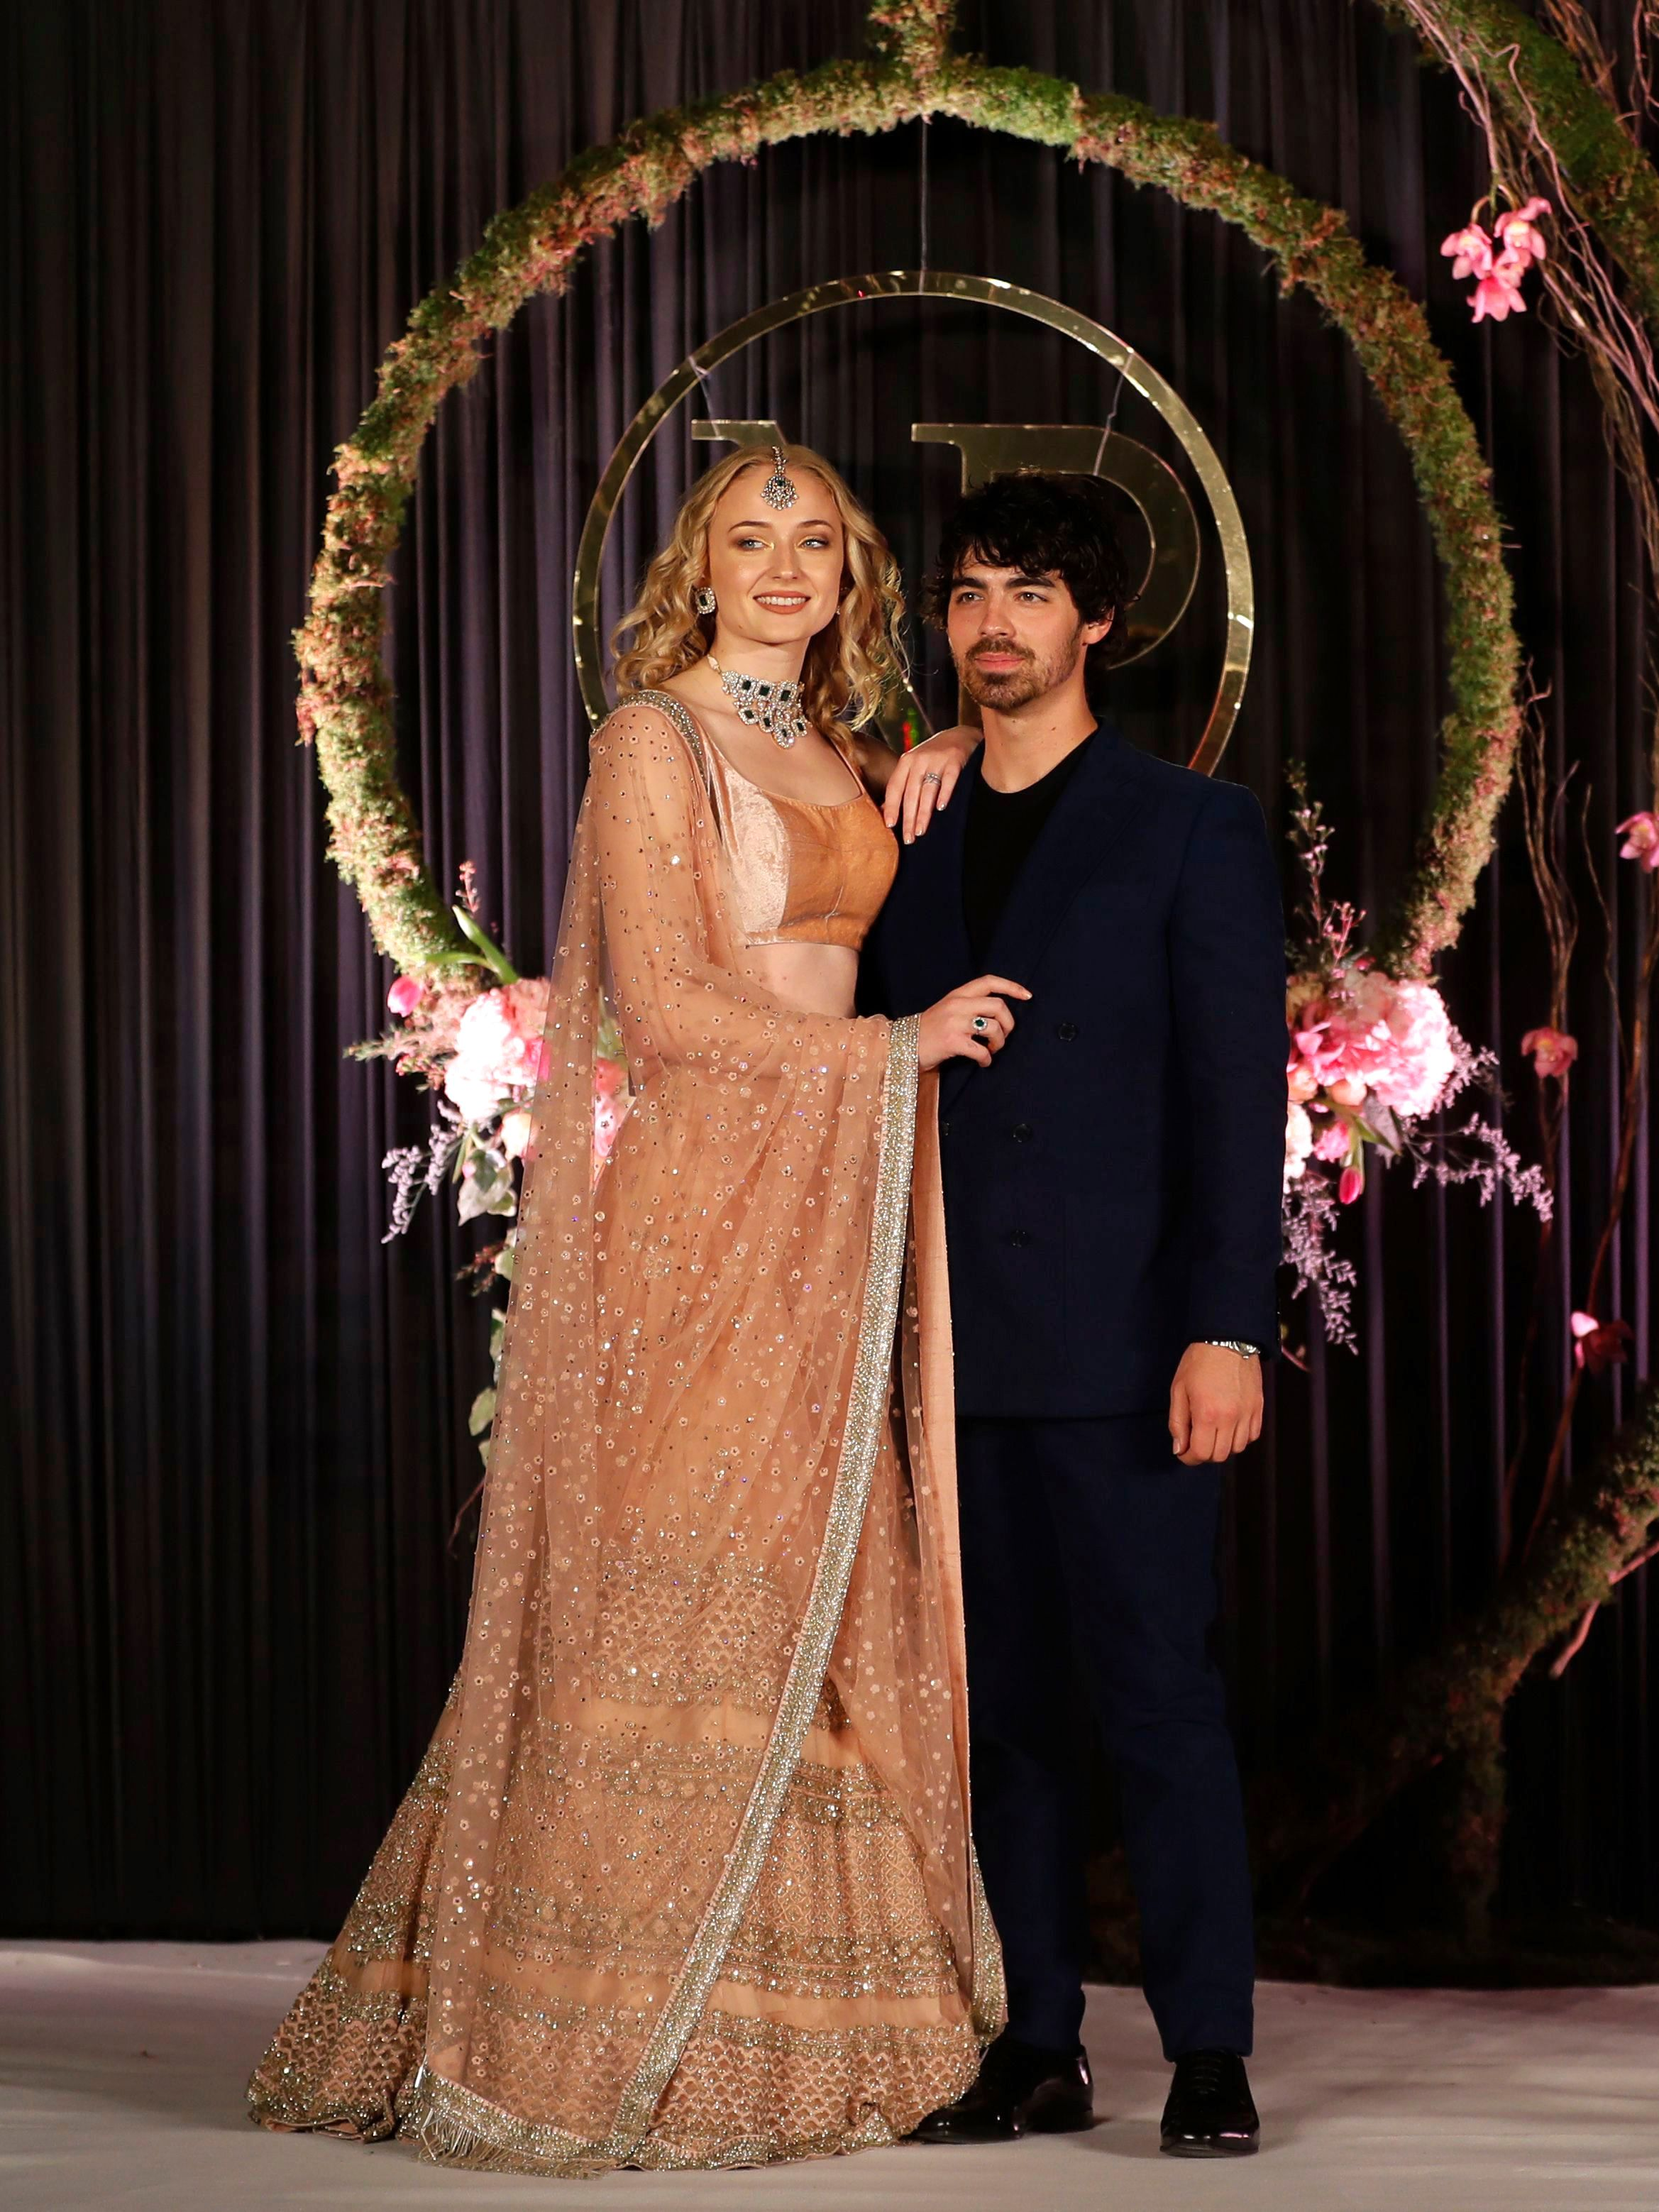 See Sophie Turners Reception Dress for Nick Jonas and